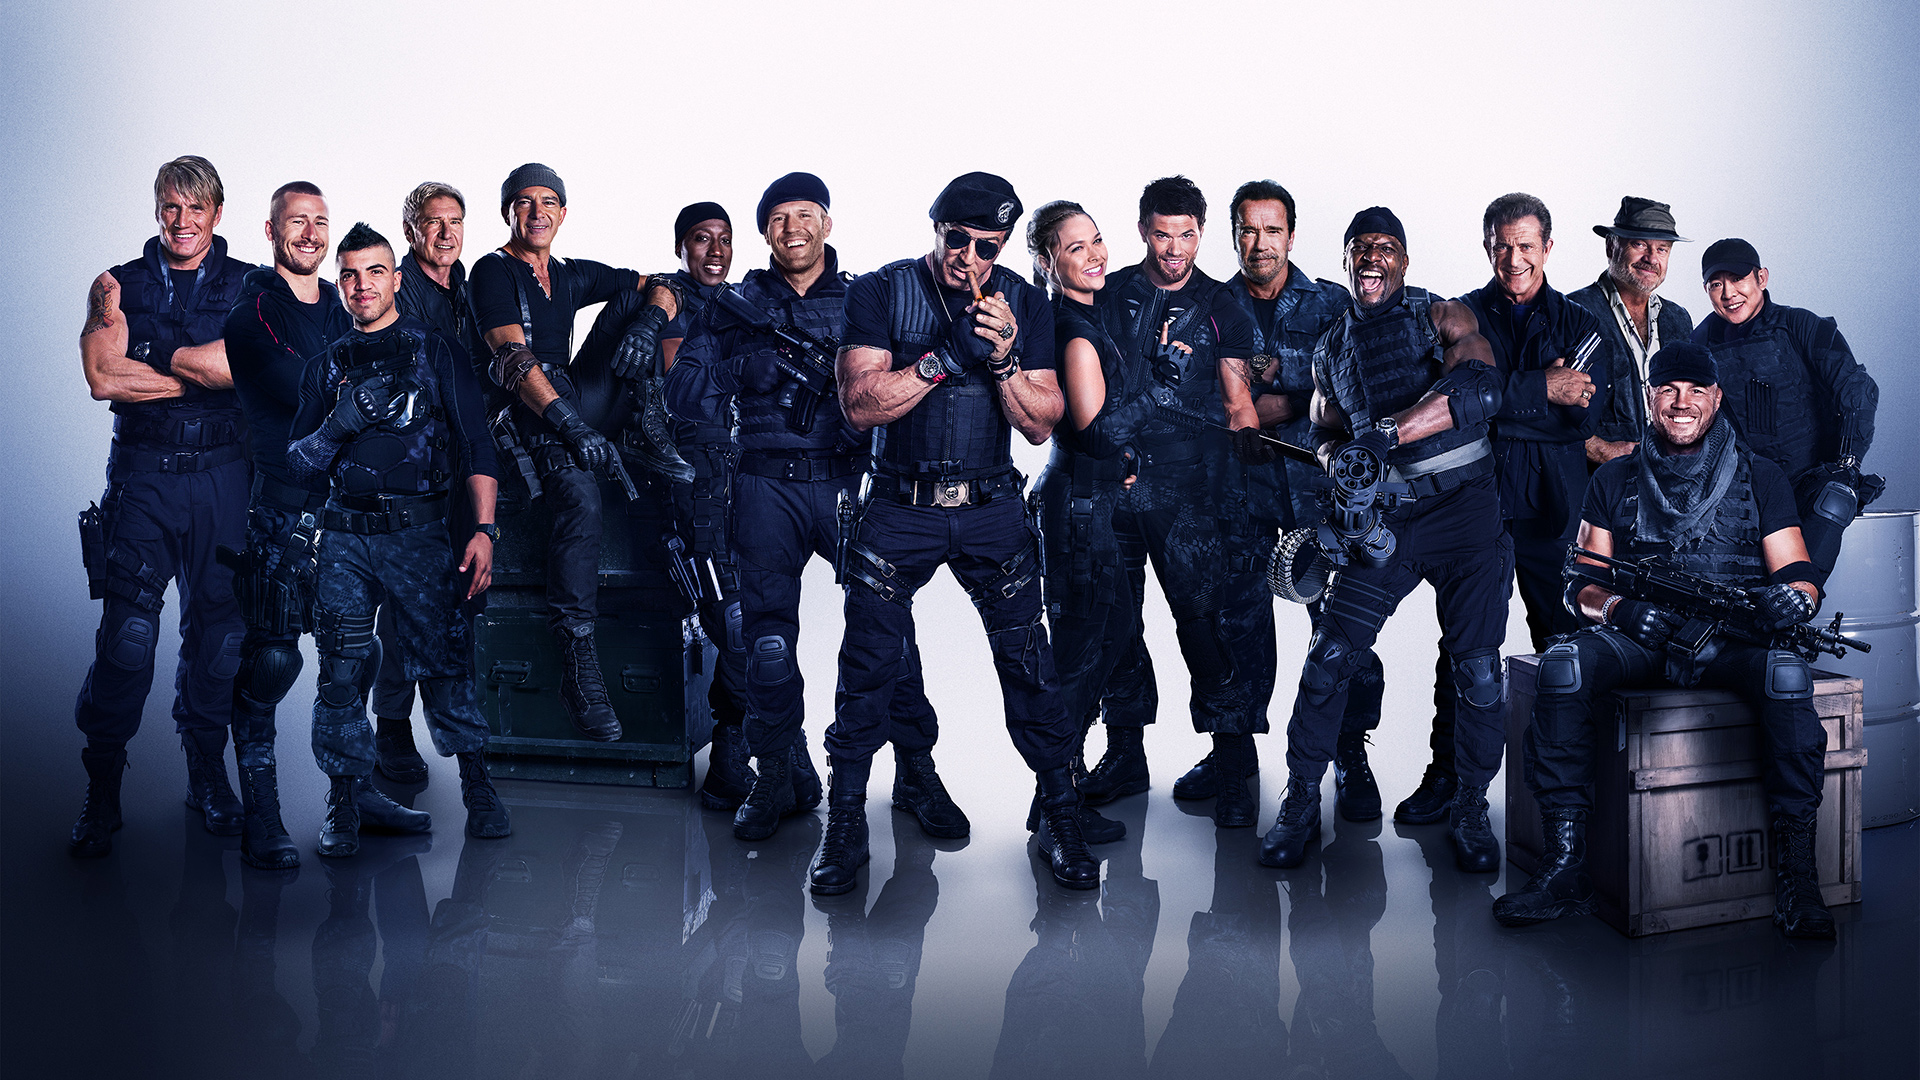 99 the expendables 3 hd wallpapers | background images - wallpaper abyss